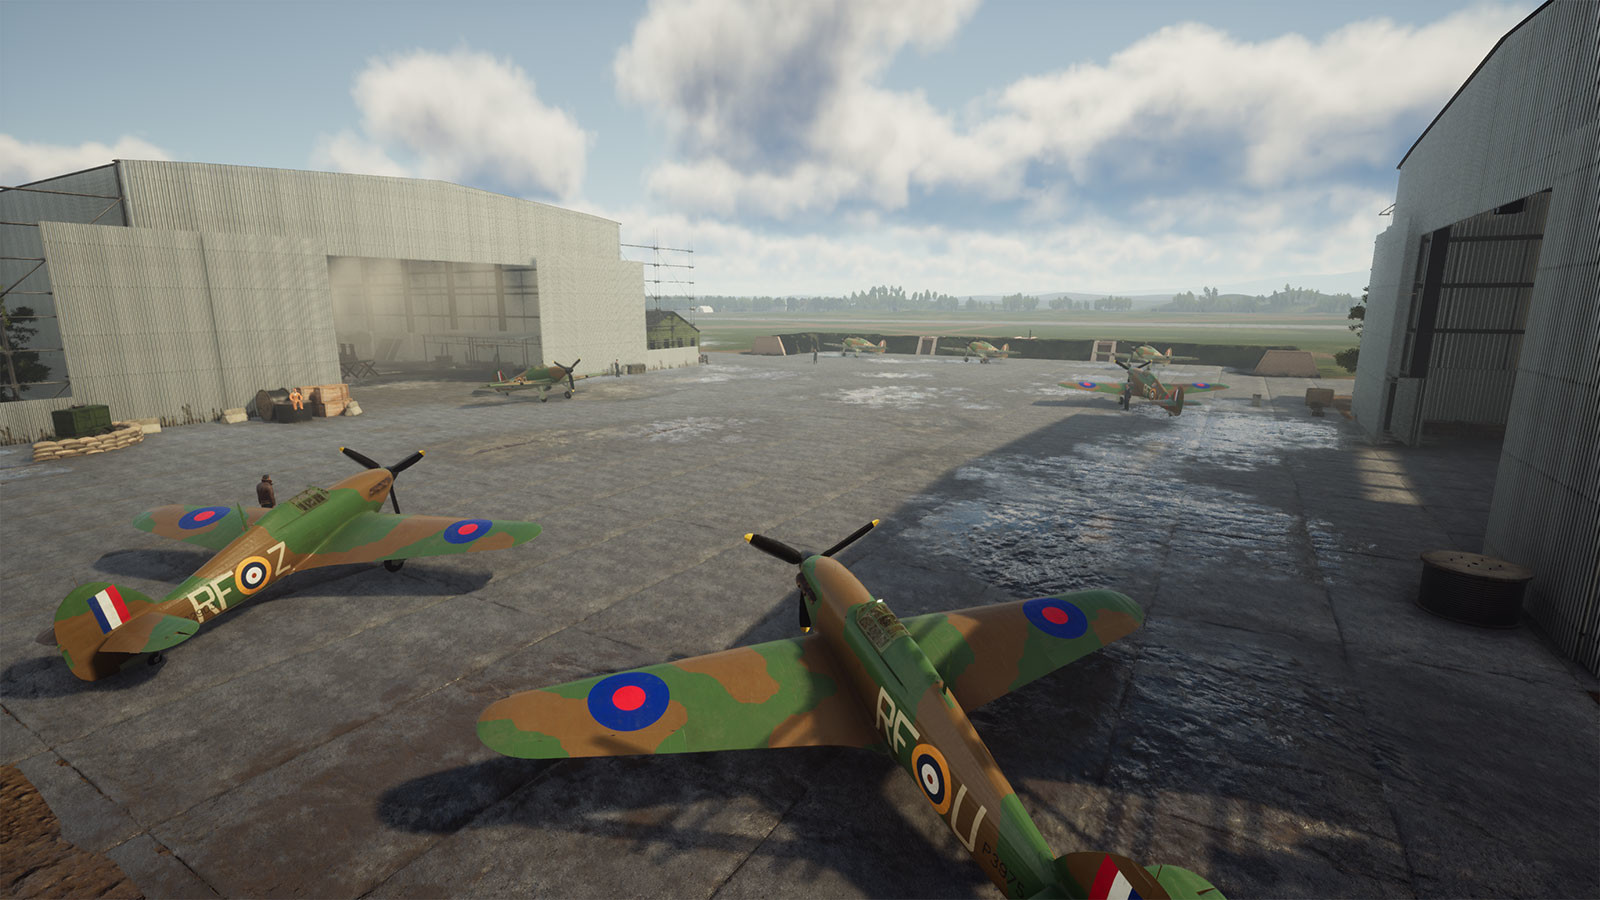 303 Squadron: Battle of Britain [Steam CD Key] for PC - Buy now